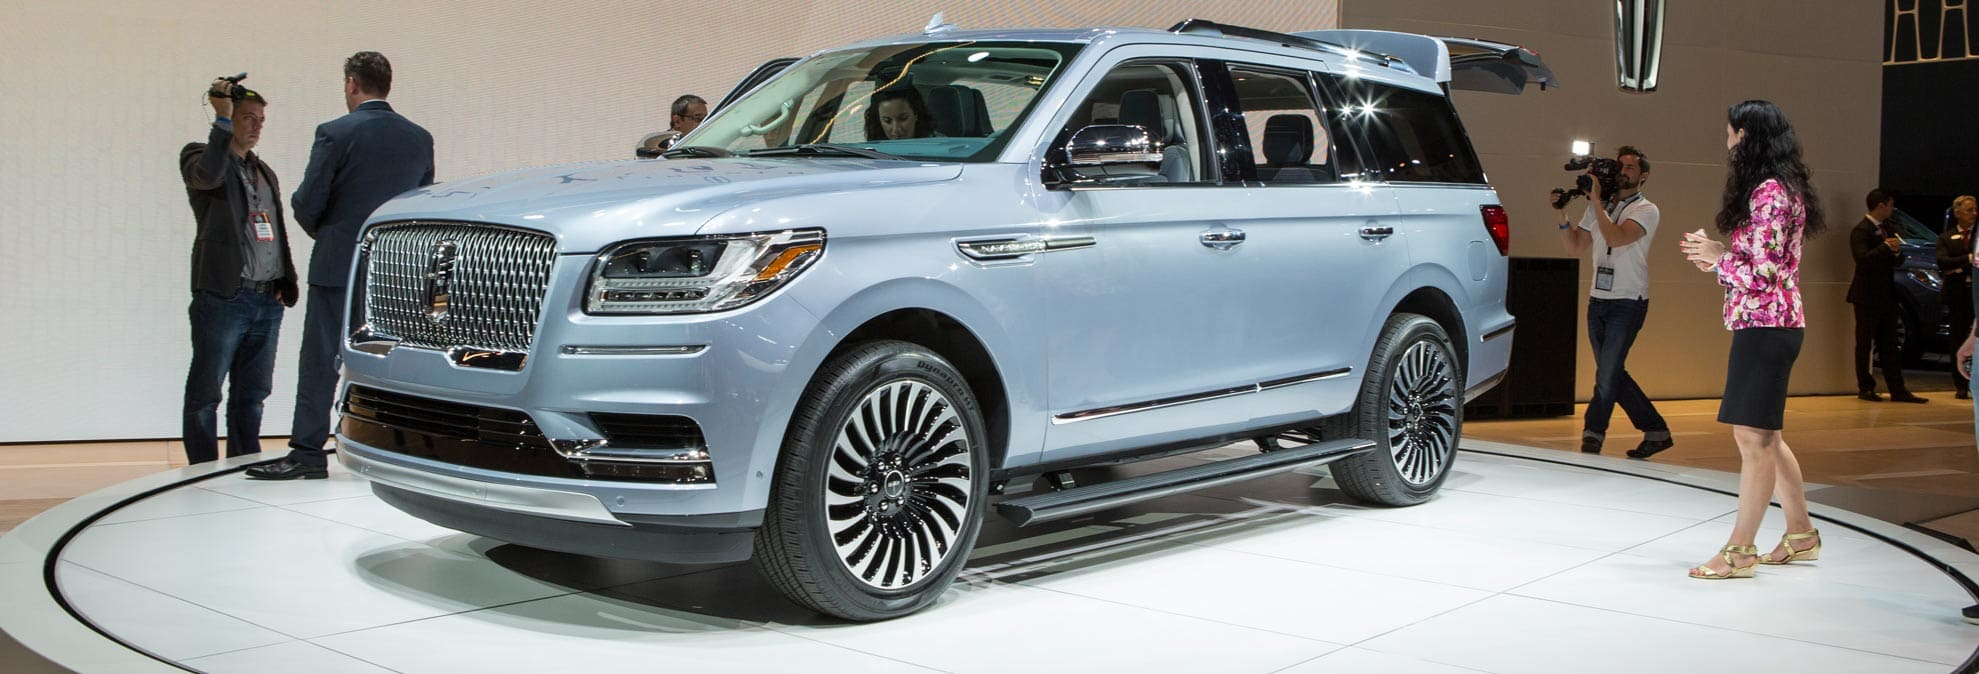 2018 Lincoln Navigator Preview Consumer Reports